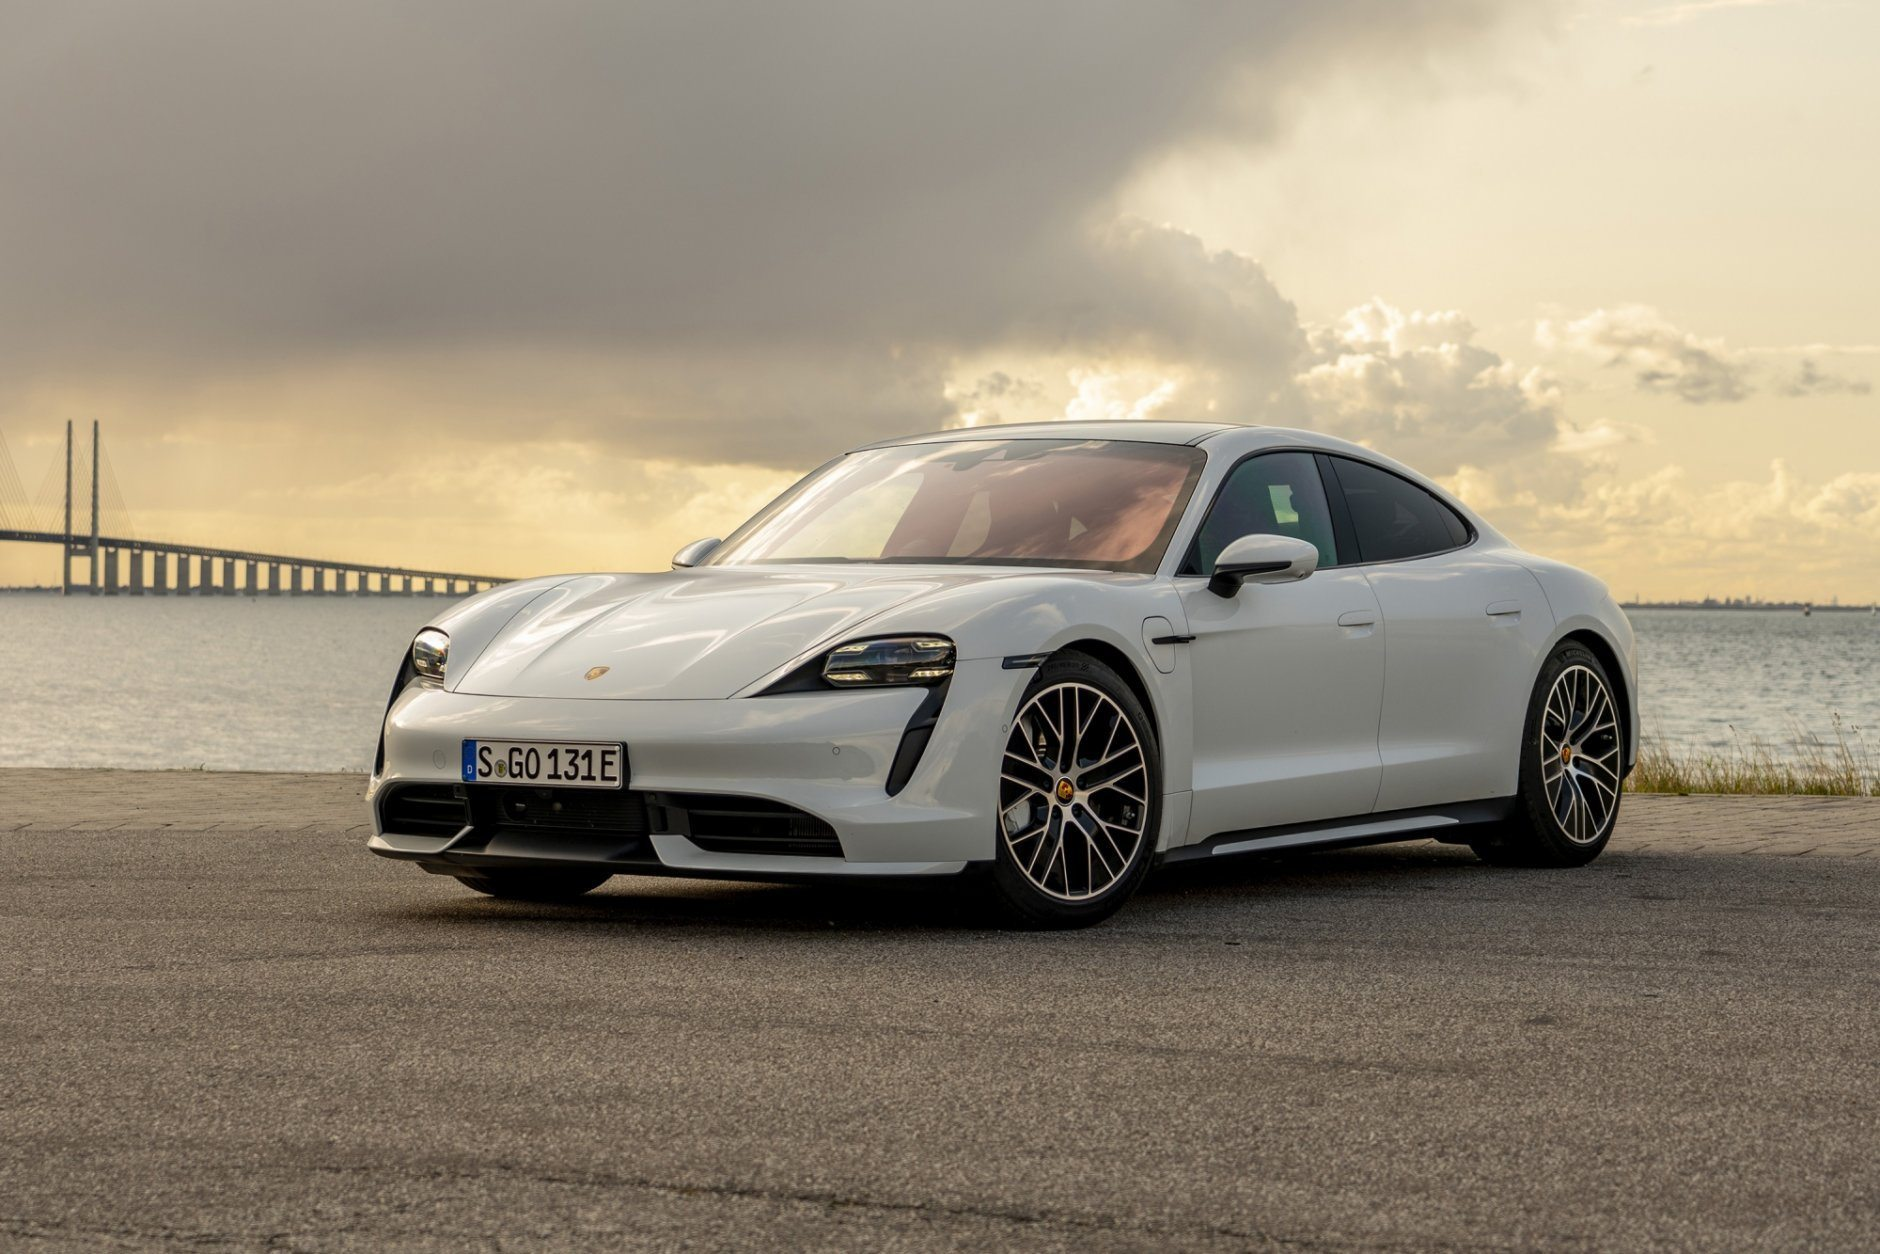 This undated photo provided by Porsche shows the 2020 Porsche Taycan, Porsche's first all-electric car. (Manuel Hollenbach/Porsche Cars North America via AP)